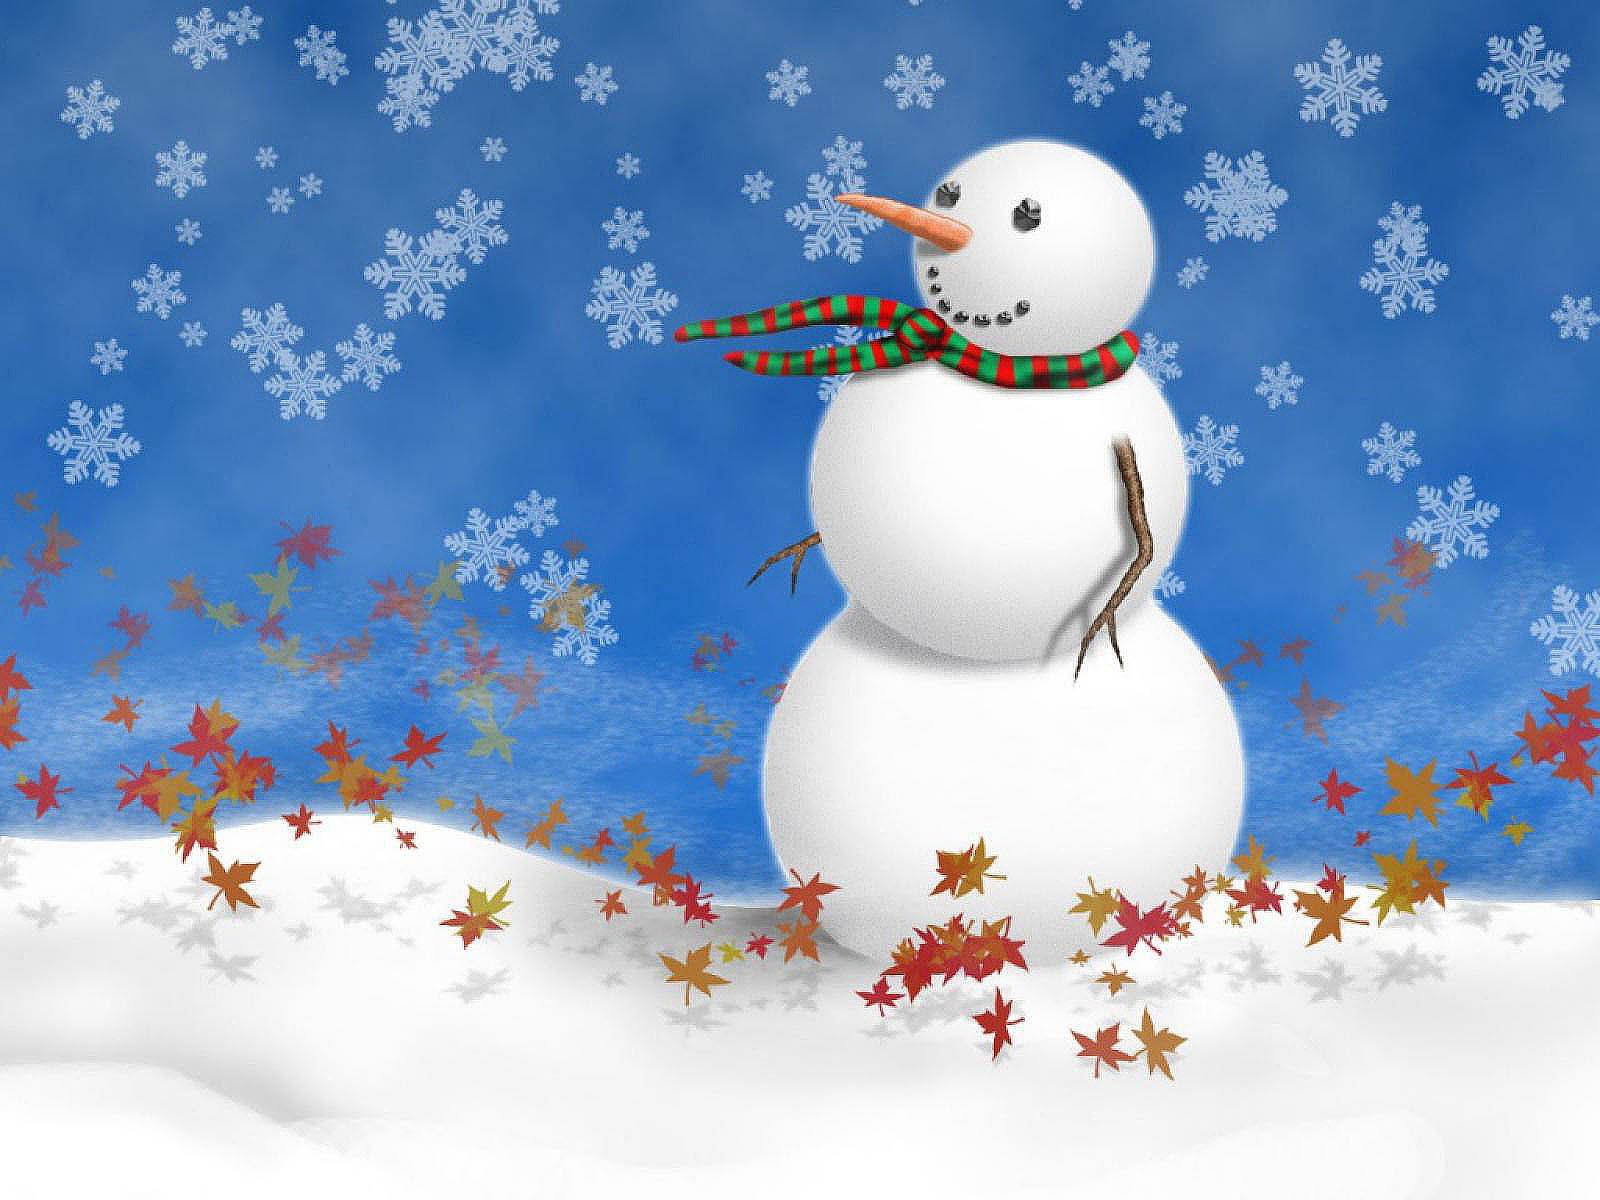 winter snowman wallpaper 2017   Grasscloth Wallpaper 1600x1200